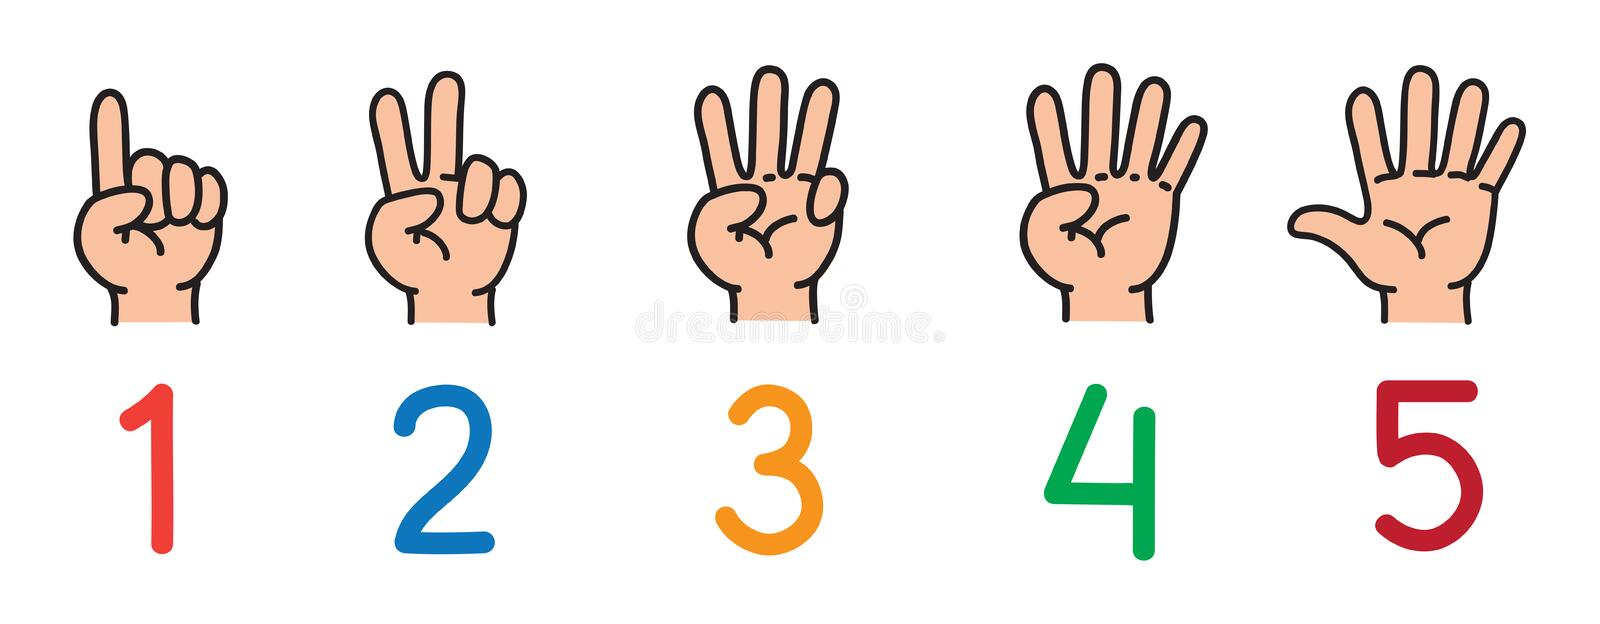 Cartoon Characters 3 Fingers : Hands with fingers icon set for counting education stock